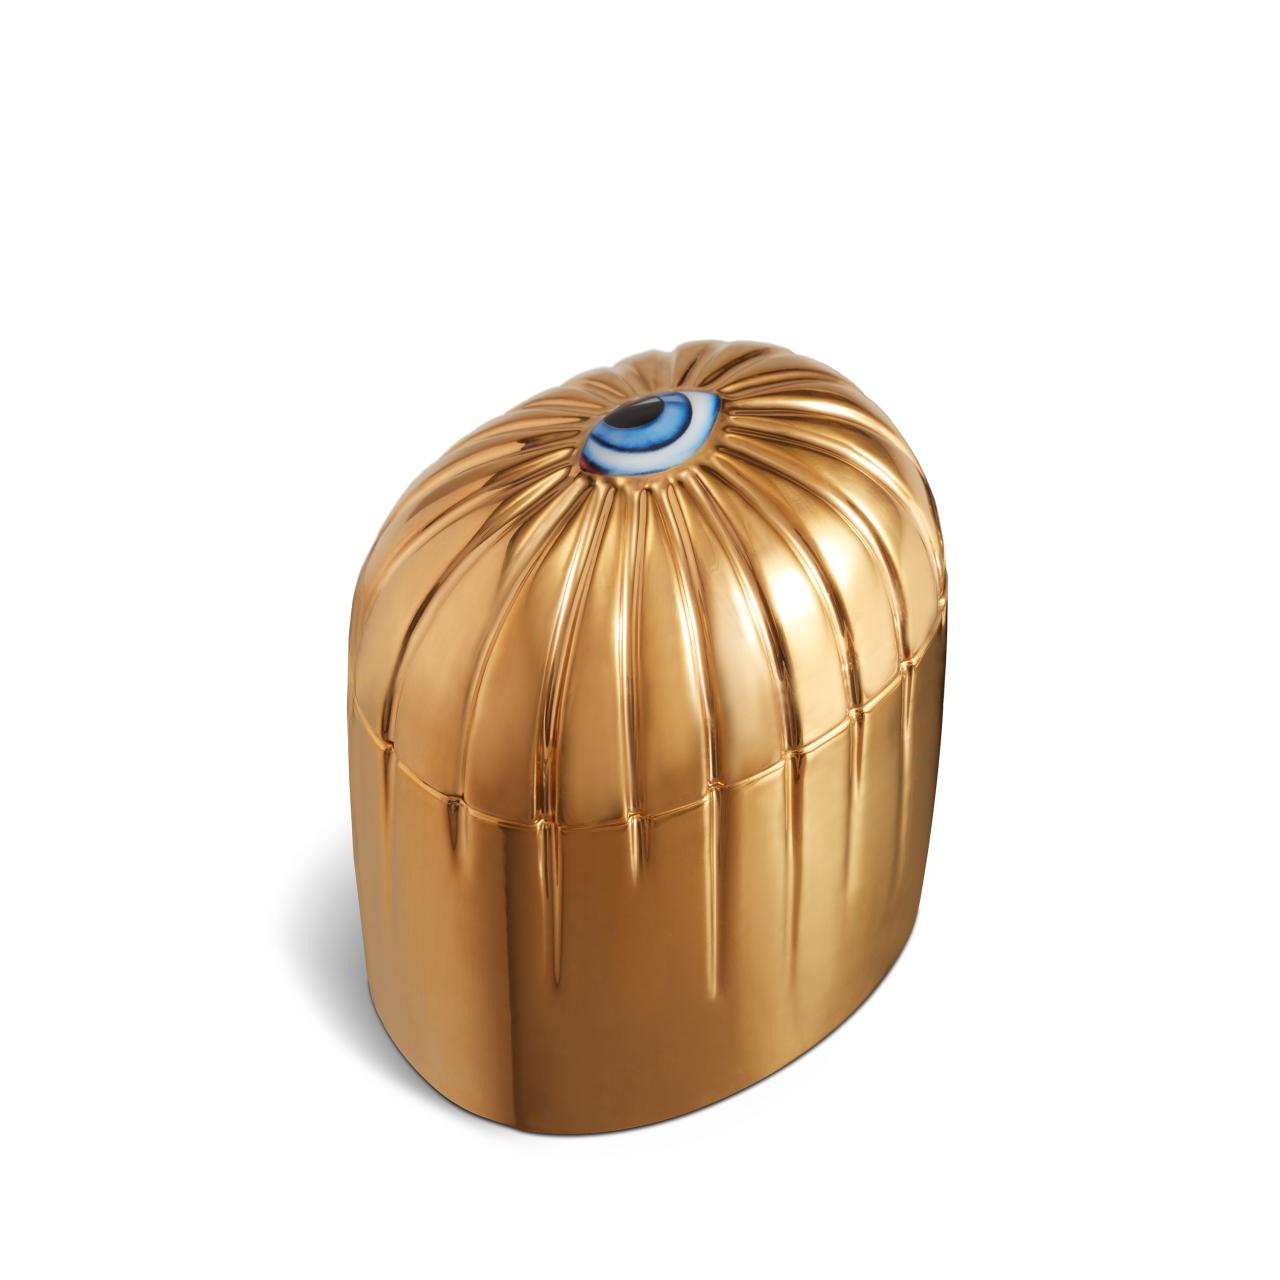 lito candle in gold and blue by lobjet - Little Luxuries Gift Guide - Good Things in Small Packages